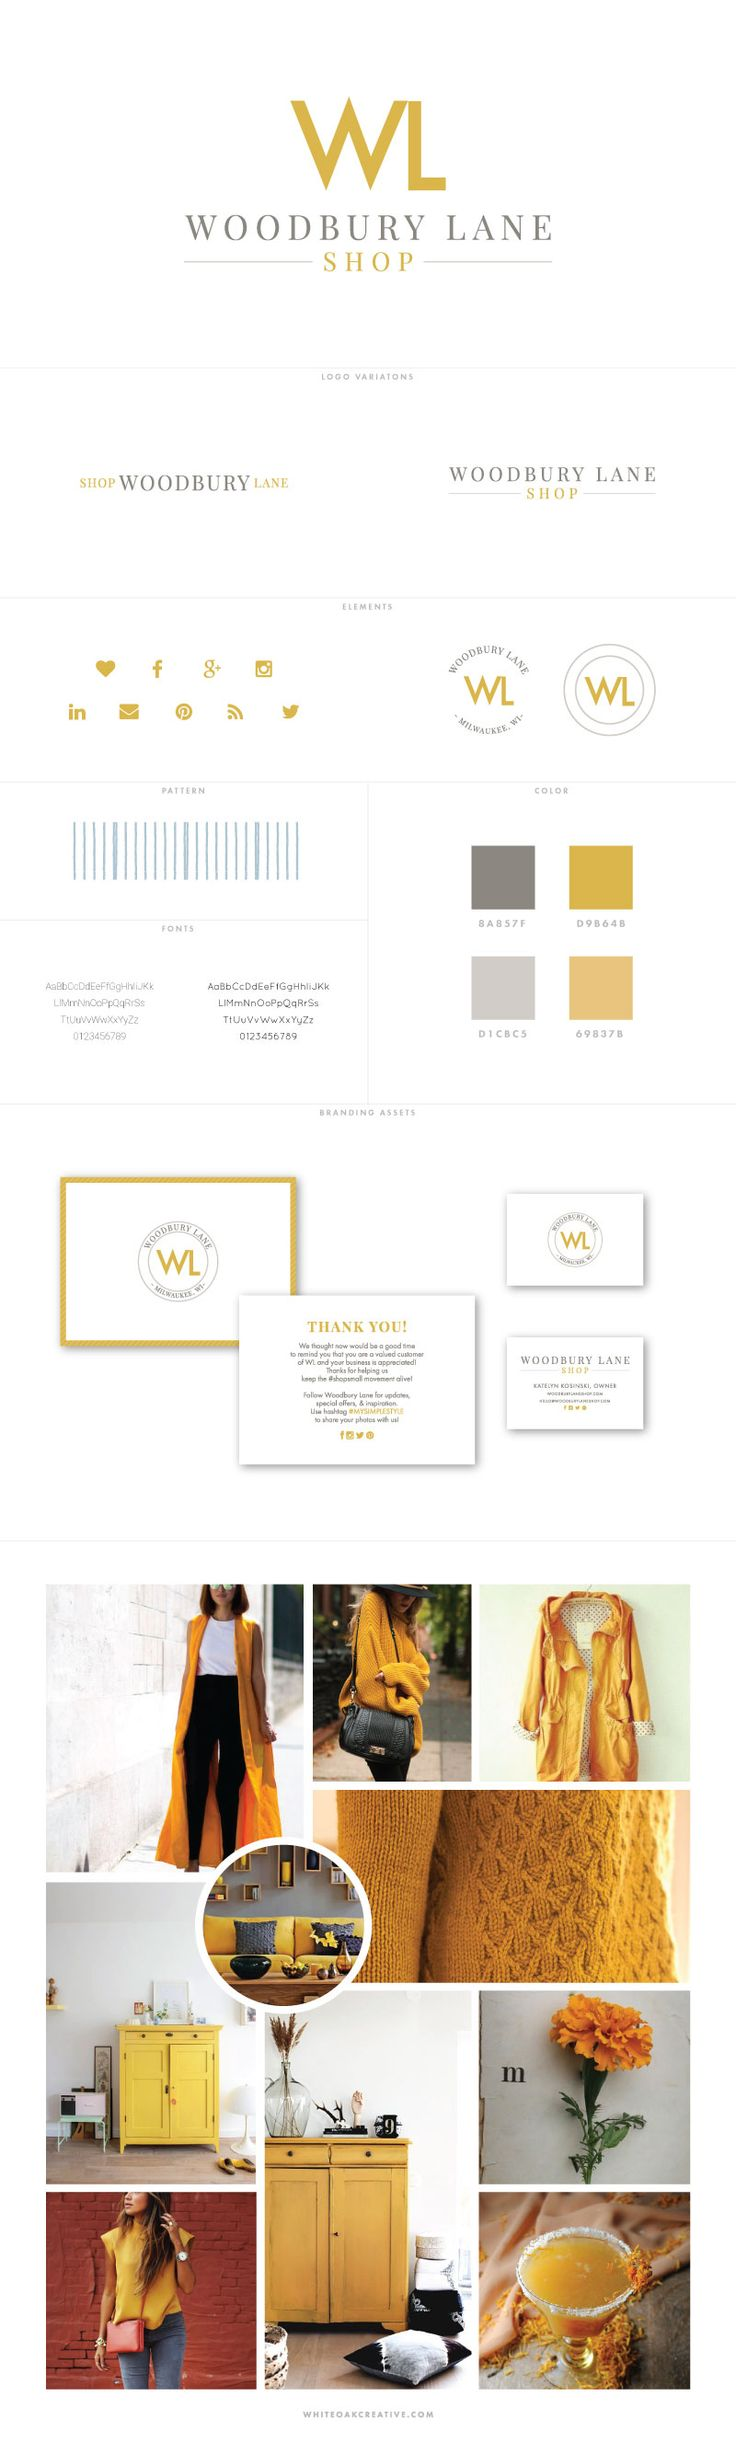 Custom Branding for Woodbury Lane                                                                                                                                                                                 More